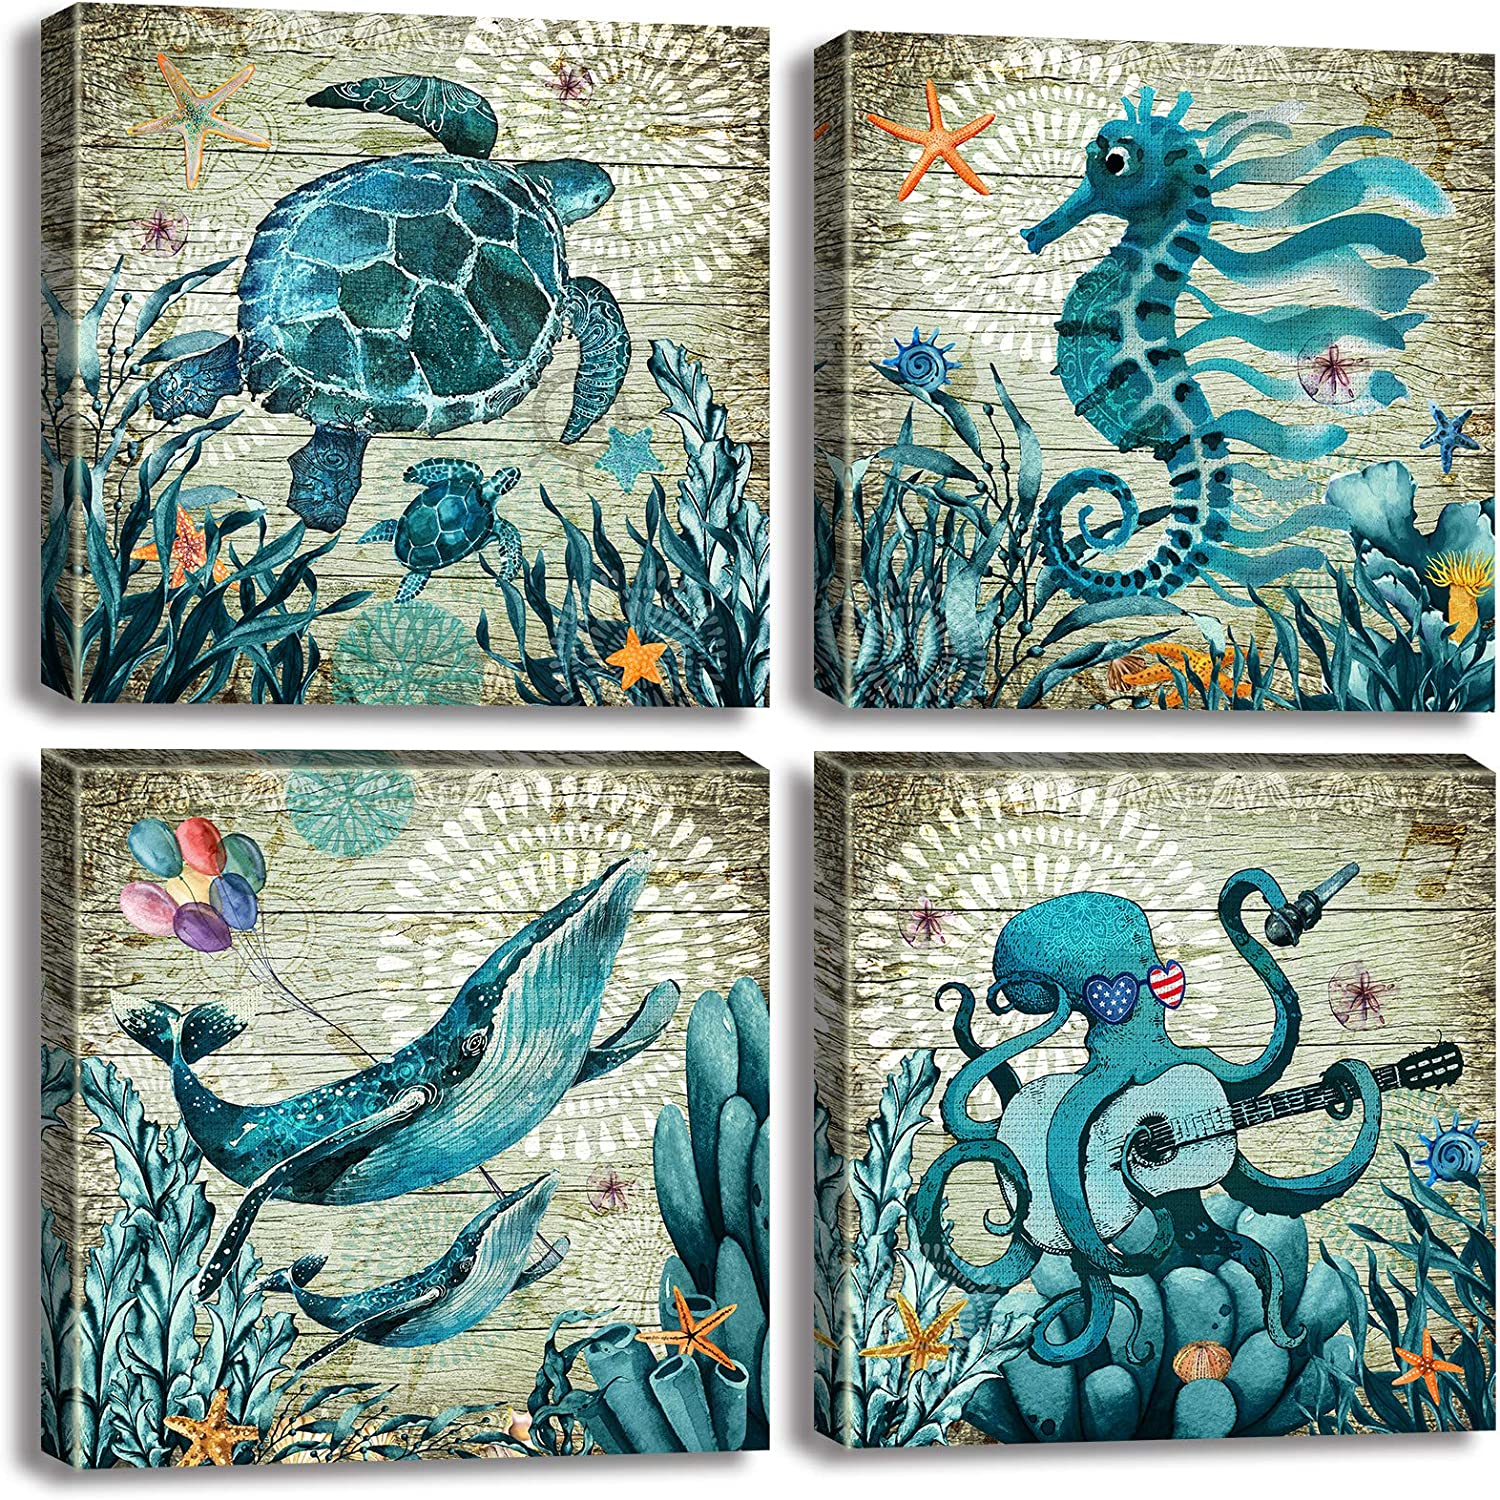 Bathroom Wall Art Decor Blue Watercolor Theme Marine Animal Pictures Under Ocean Dolphin Seahorse Octopus Modern Artwork Kitchen Home Canvas Decorations 12